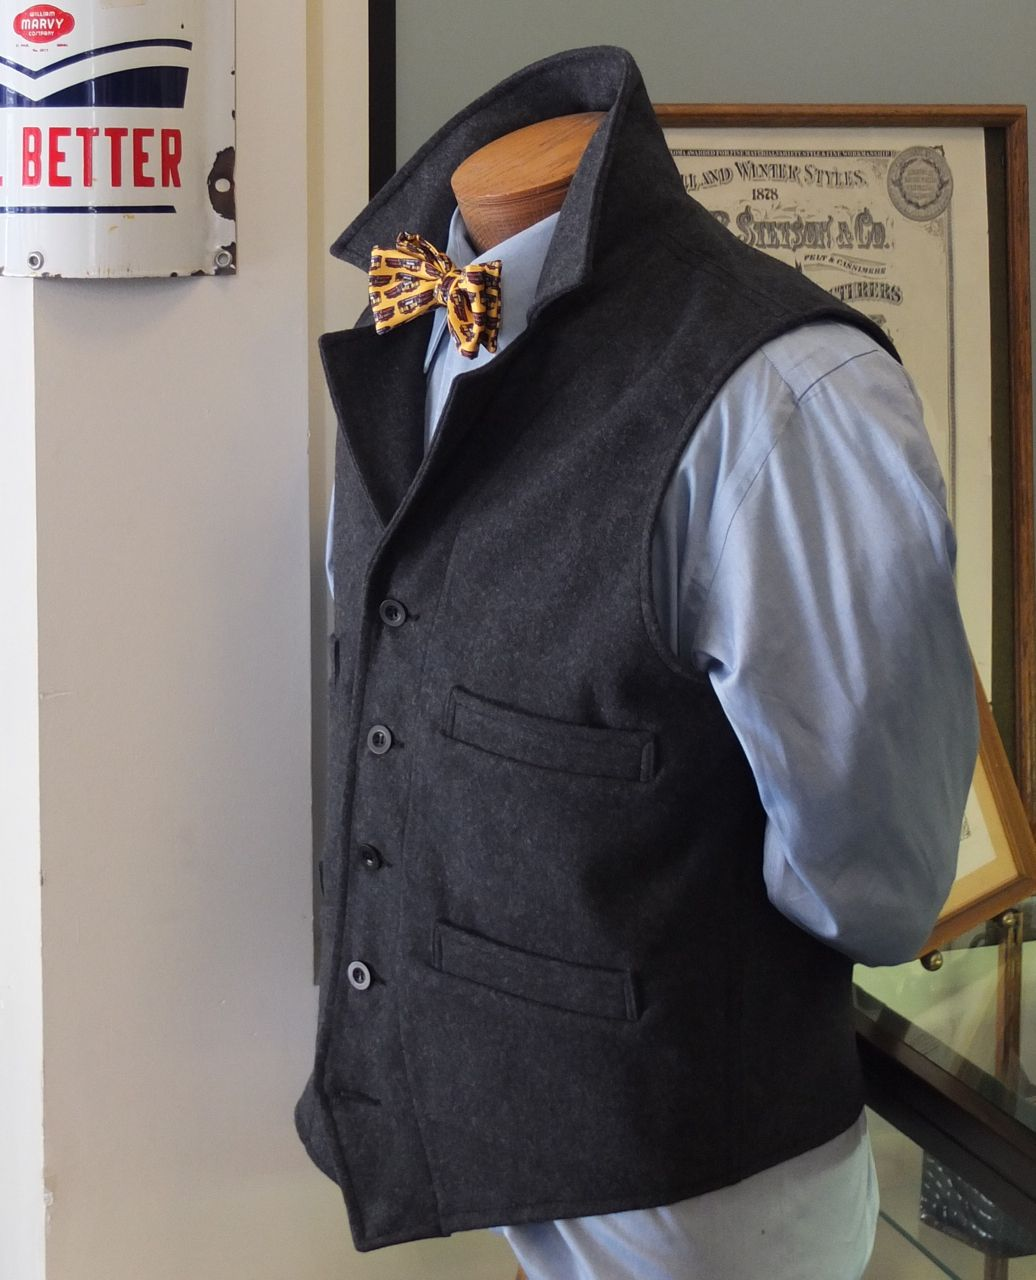 SUITS AND JACKETS - Waistcoats Filson Sale Collections Cheap Factory Outlet Free Shipping Cost vSZWGecVWv